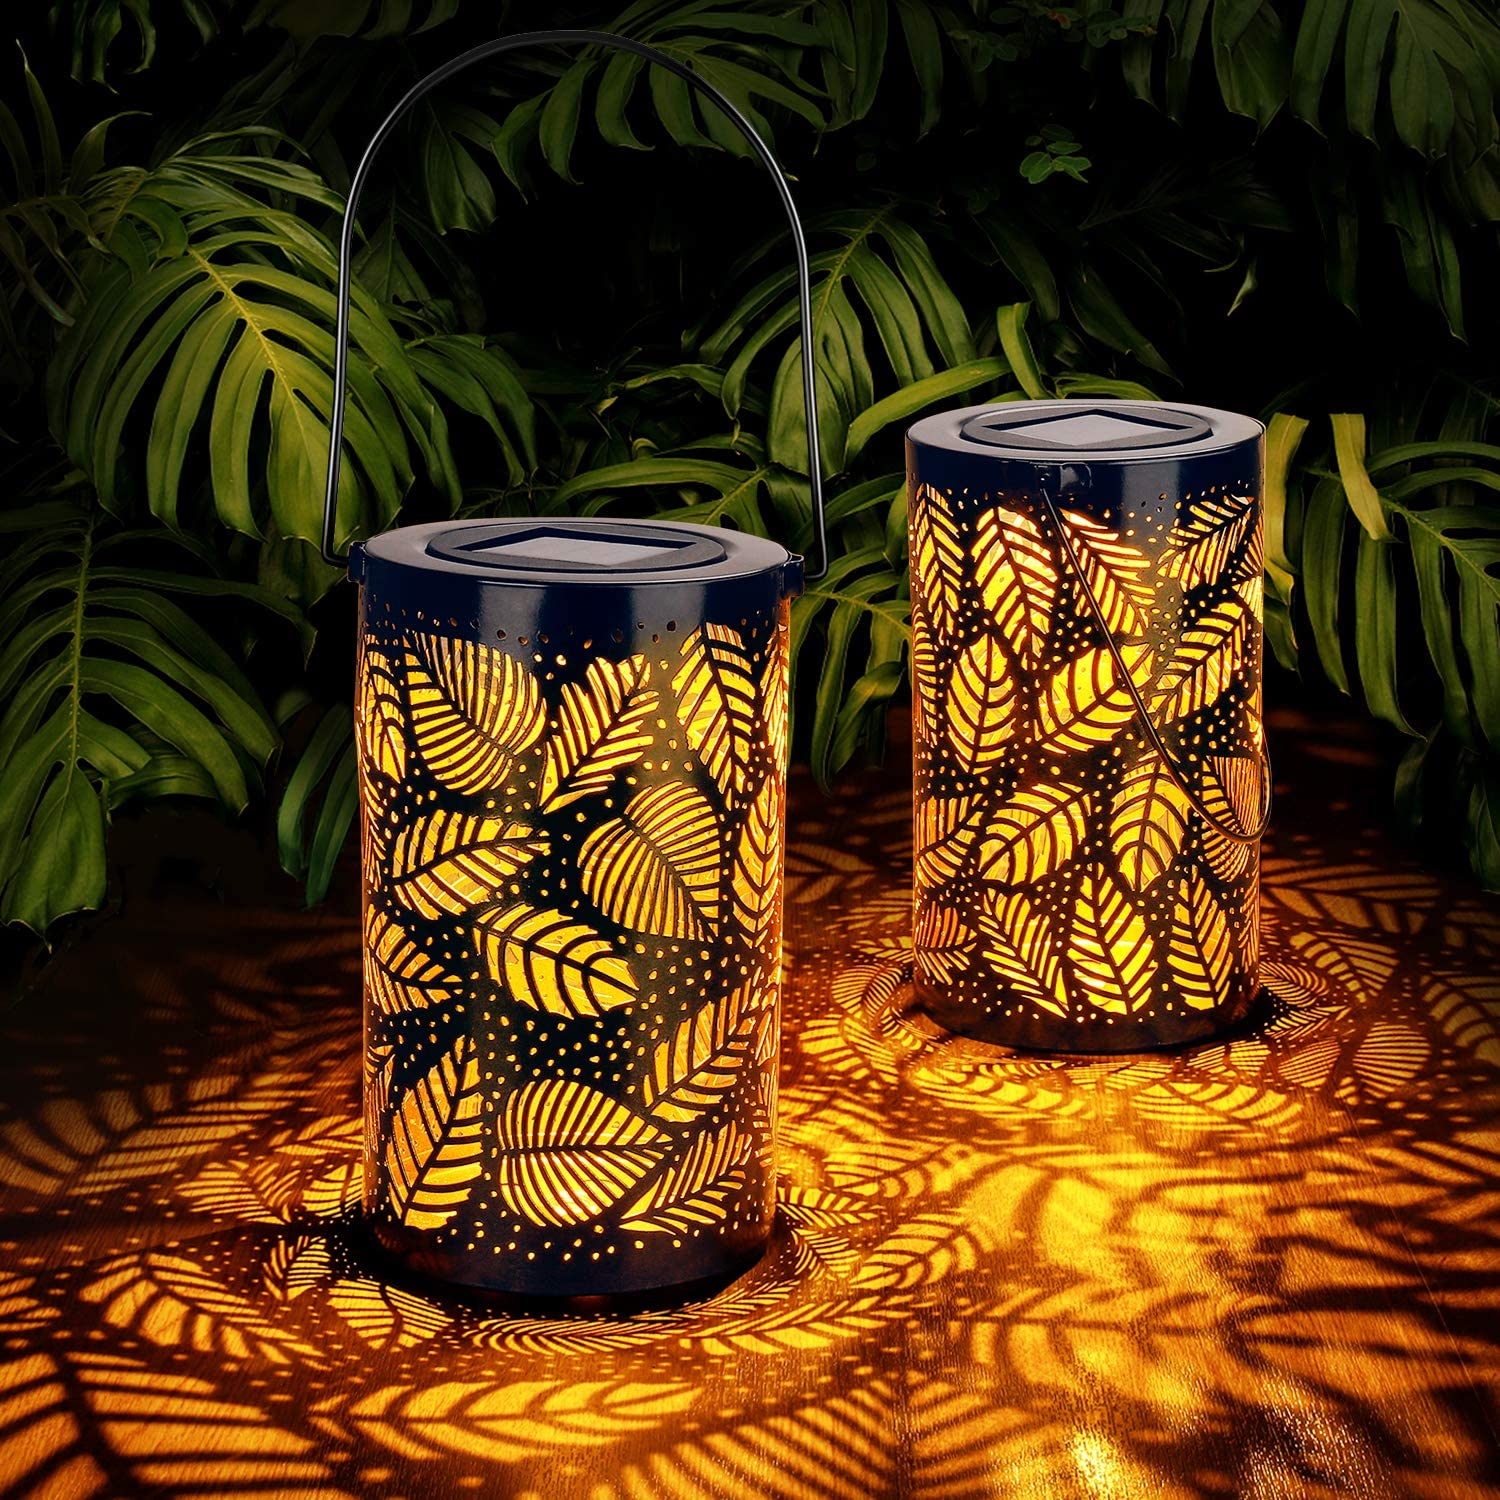 2-Pack Solar Hanging Lantern Outdoor, Metal Hollow LED Solar Lights, Warm White, Decorative Solar Powered Lamps with Stakes for Garden, Patio, Lawn, Yard, Deck, Tree, Party